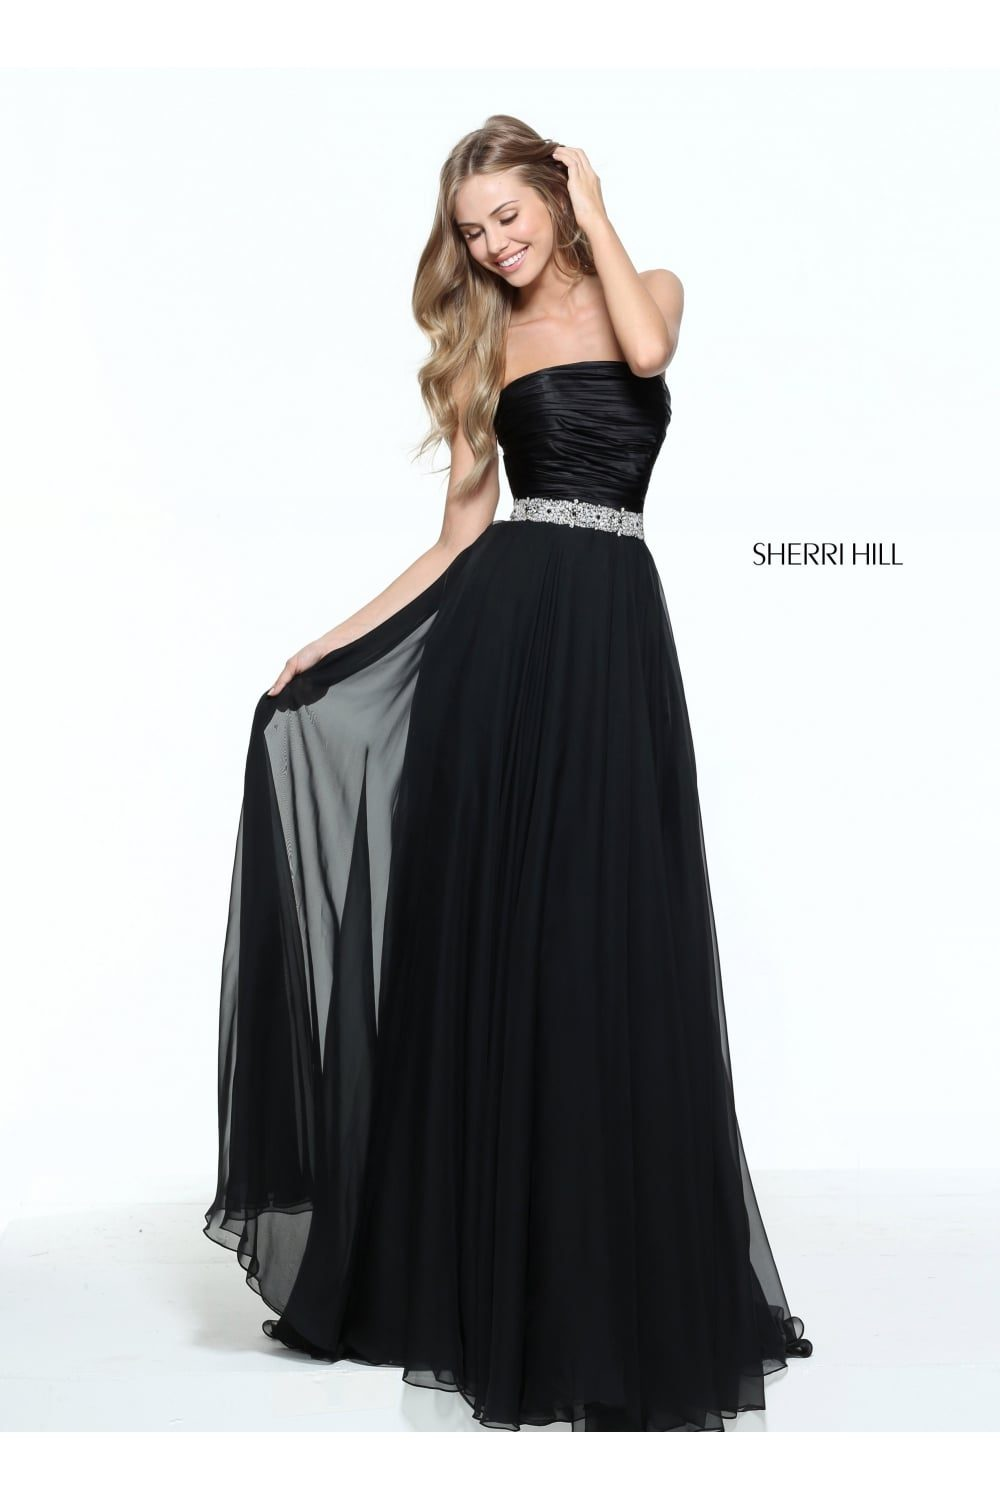 Sherri Hill 51017 Prom Dress